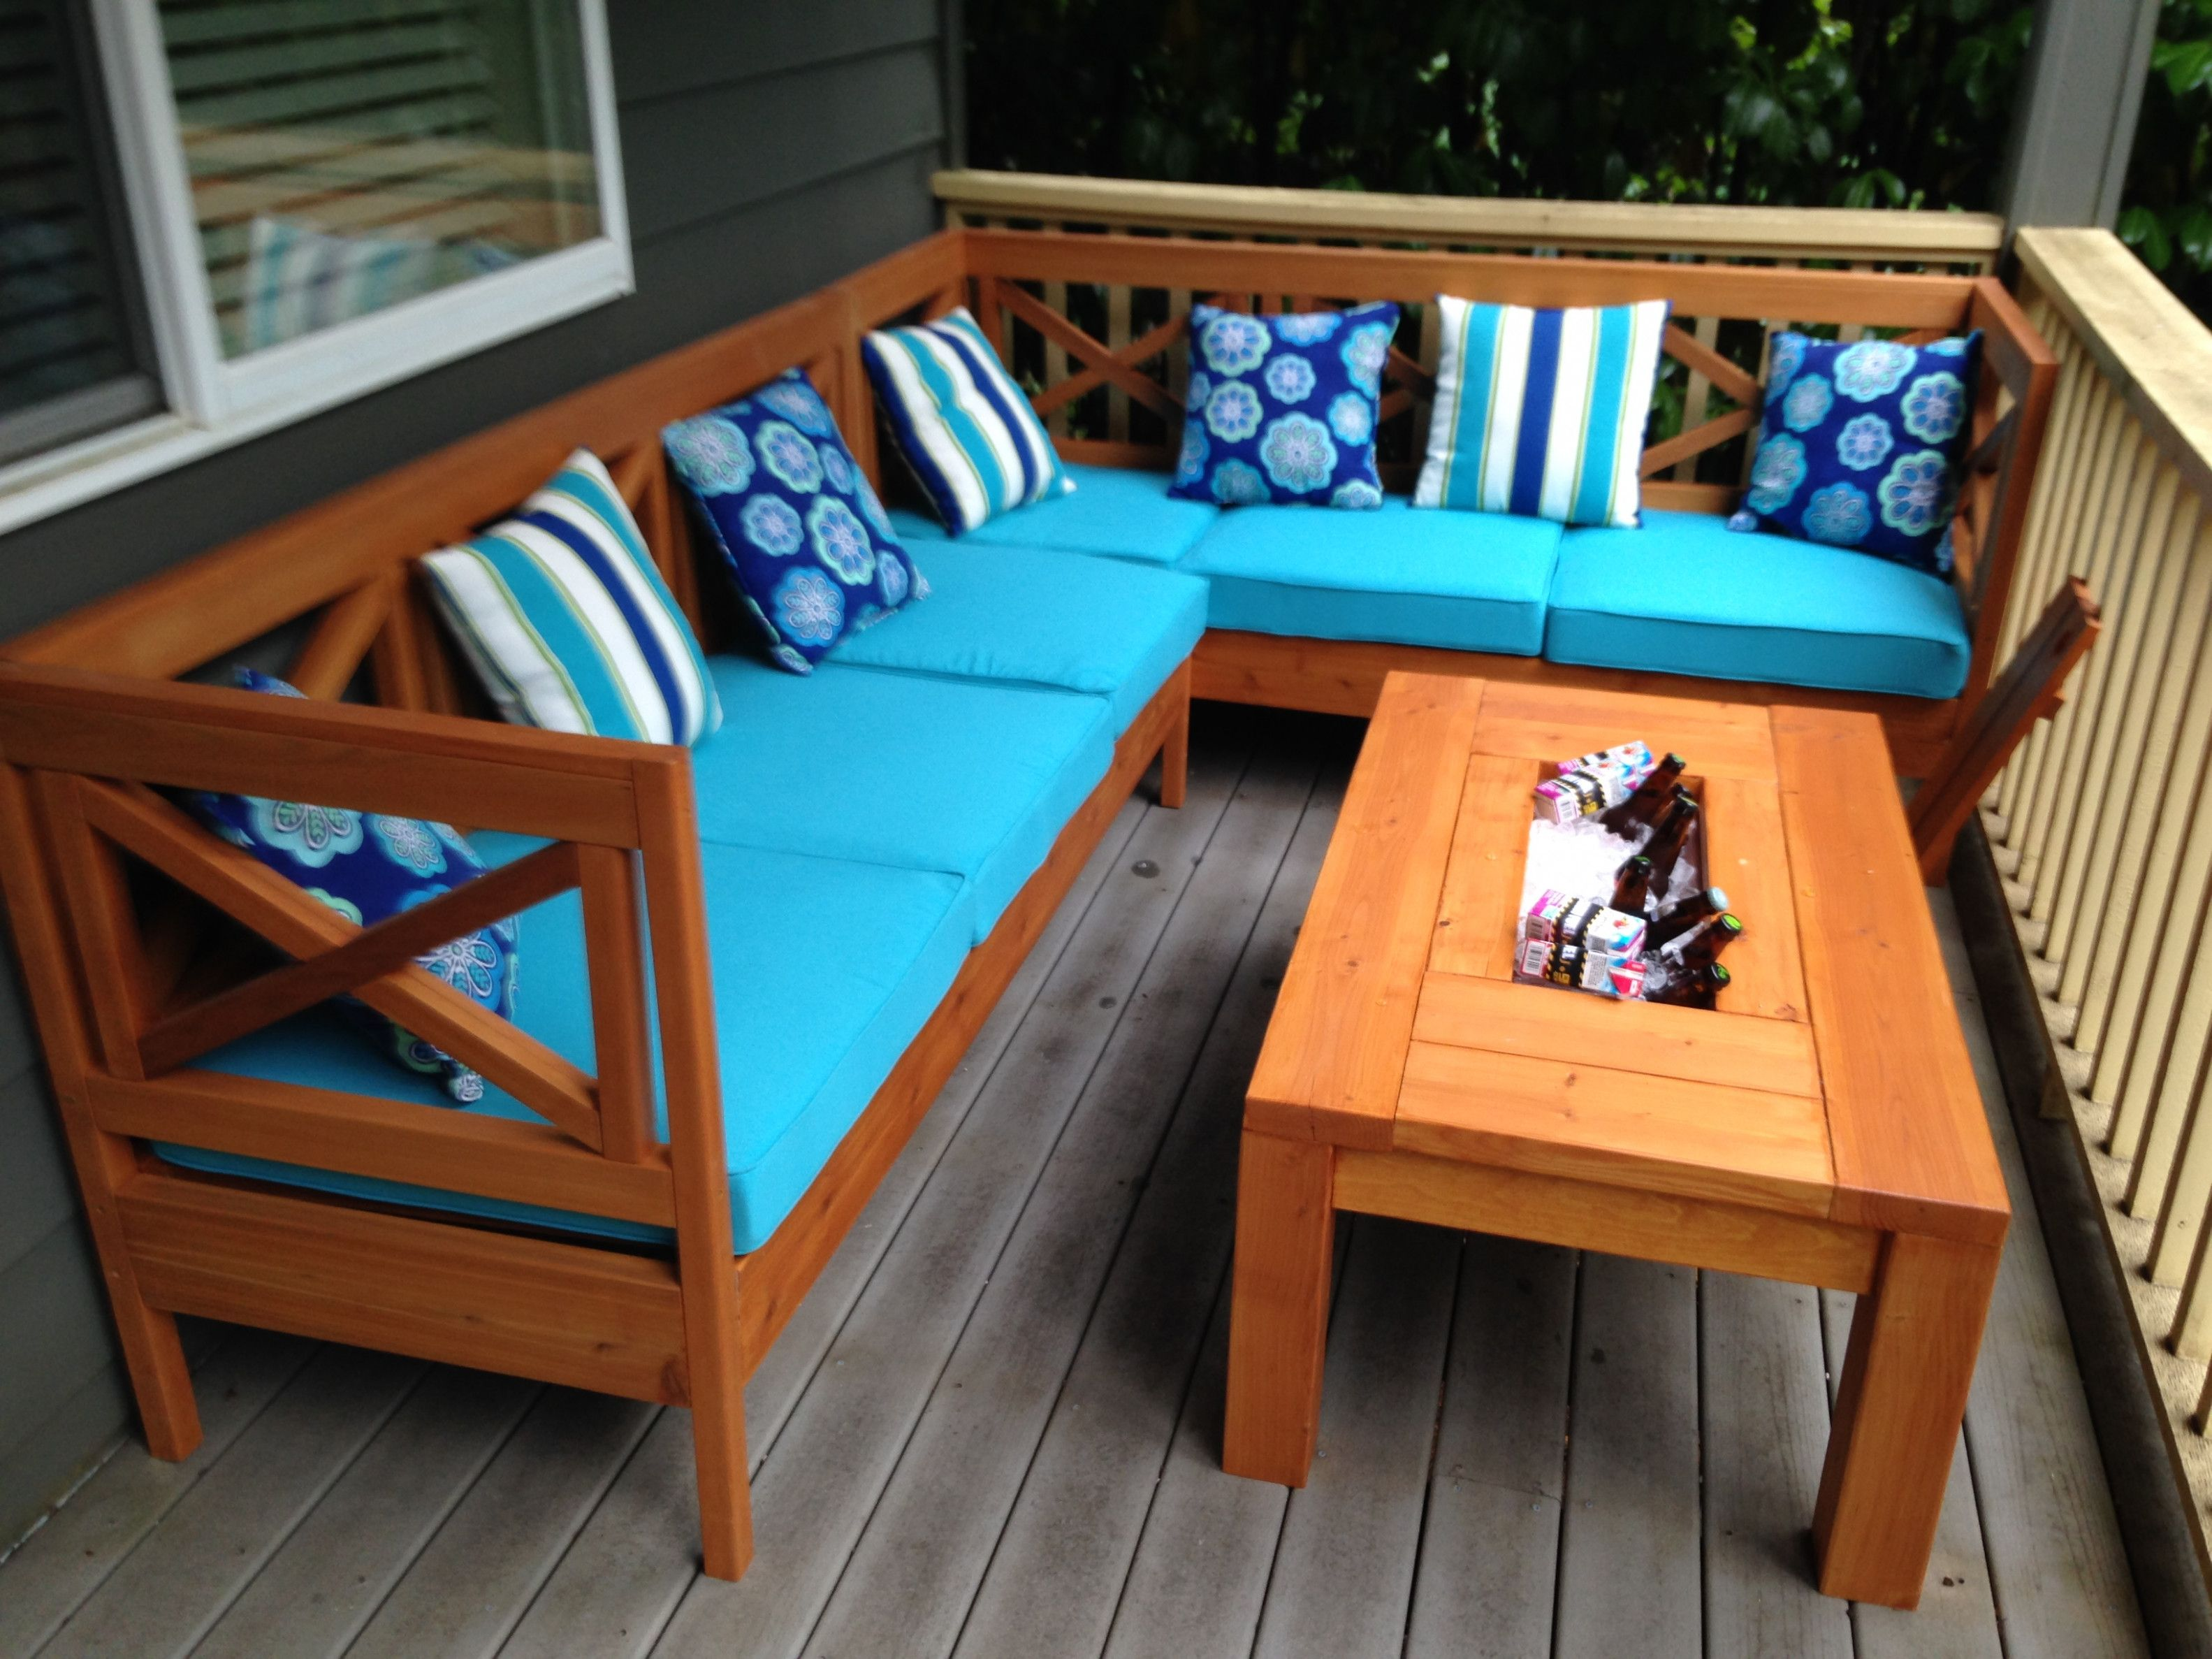 Best diy outdoor furniture for small backyard in 2020